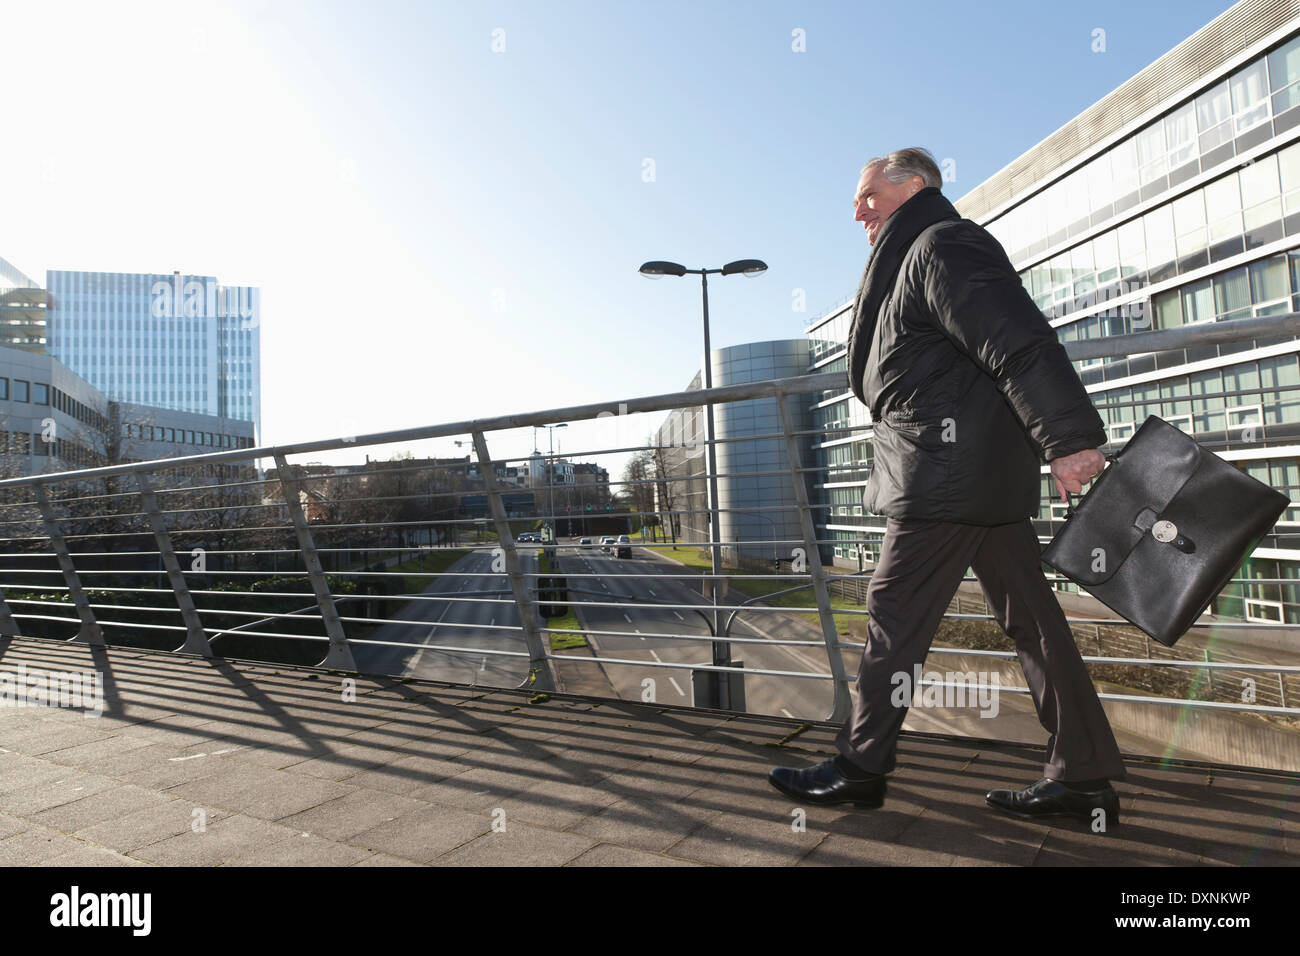 Senior businessman with briefcase on the move - Stock Image